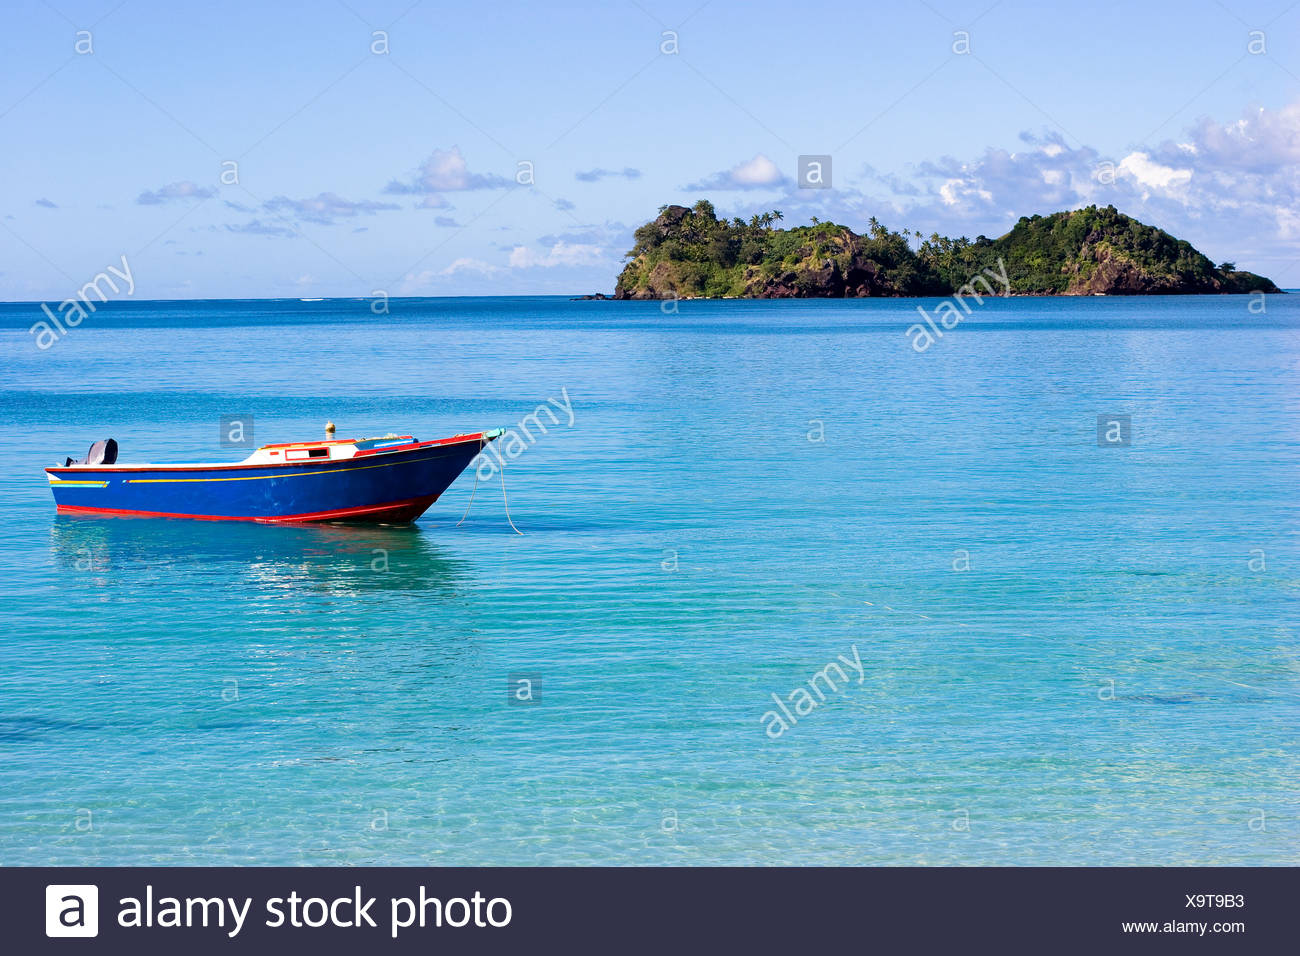 A blue wooden fishing boat floats in the calm waters of Malakati, Fiji. - Stock Image